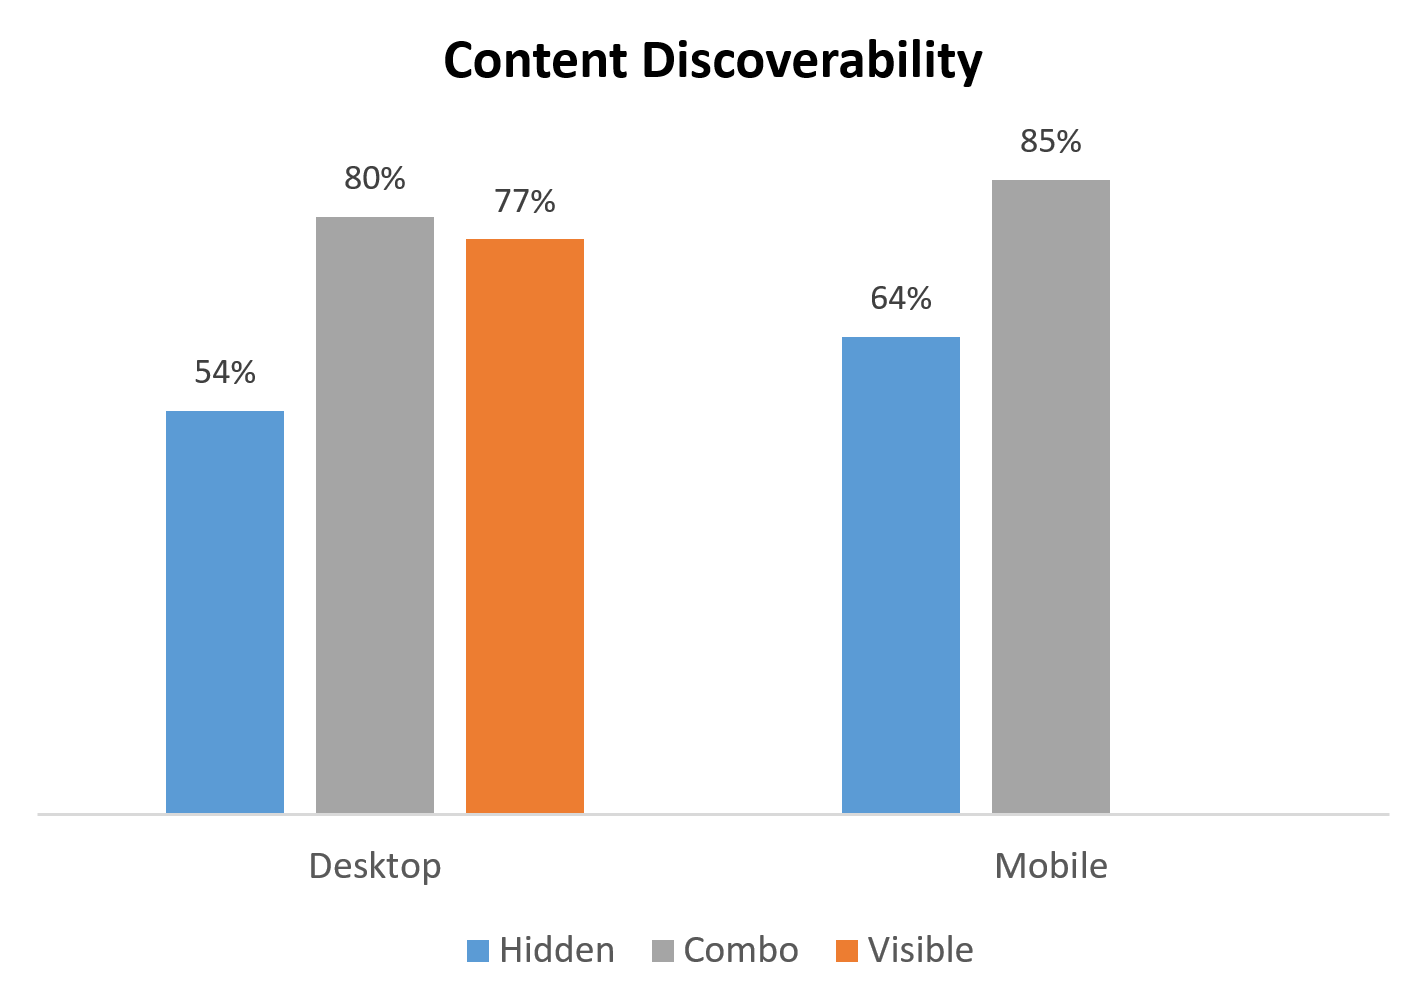 The content discoverability for hidden navigation was lower than for other types of navigation for both mobile and desktop. (We did not test sites with only visible navigation on phones.) Although content discoverability on mobile tended to be slightly higher than on desktop, this difference was not statistically significant.